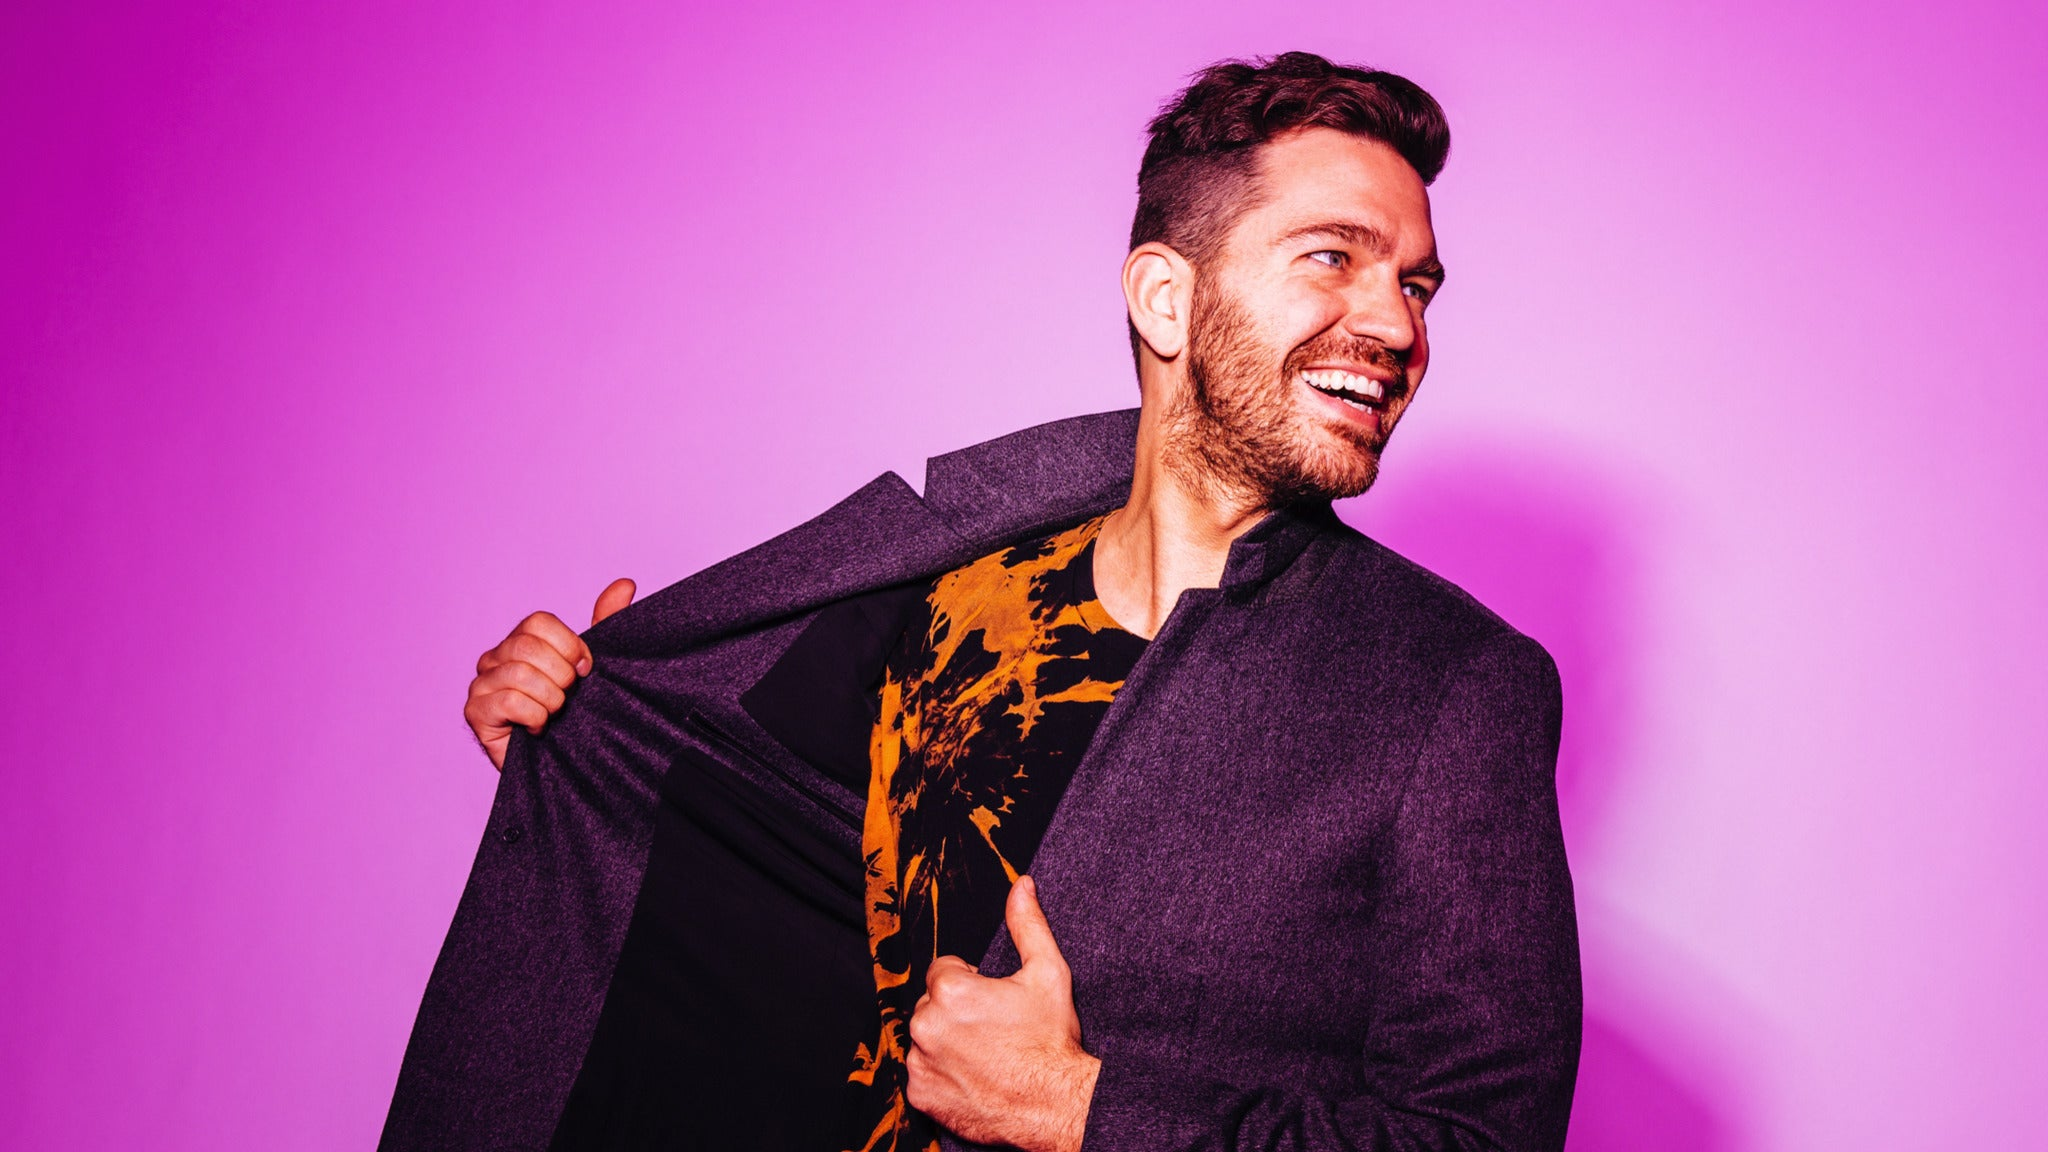 Andy Grammer - The Good Parts Tour at The Fillmore